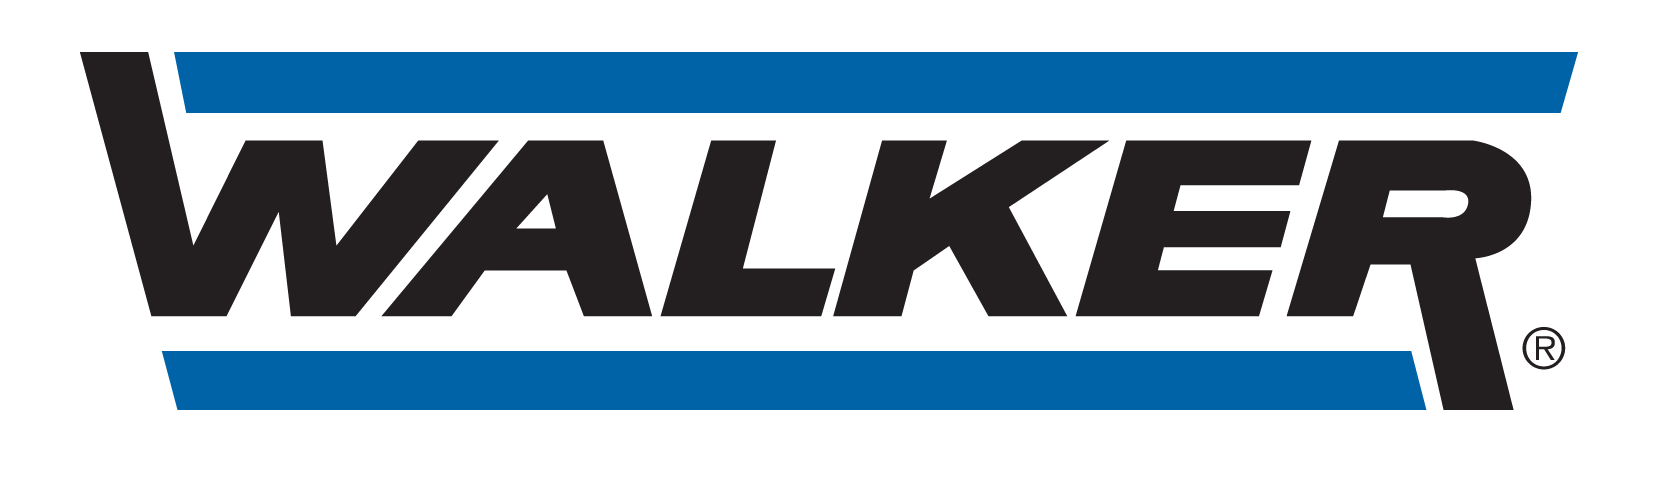 RENAGE AUTOMOBILE - logo Walker